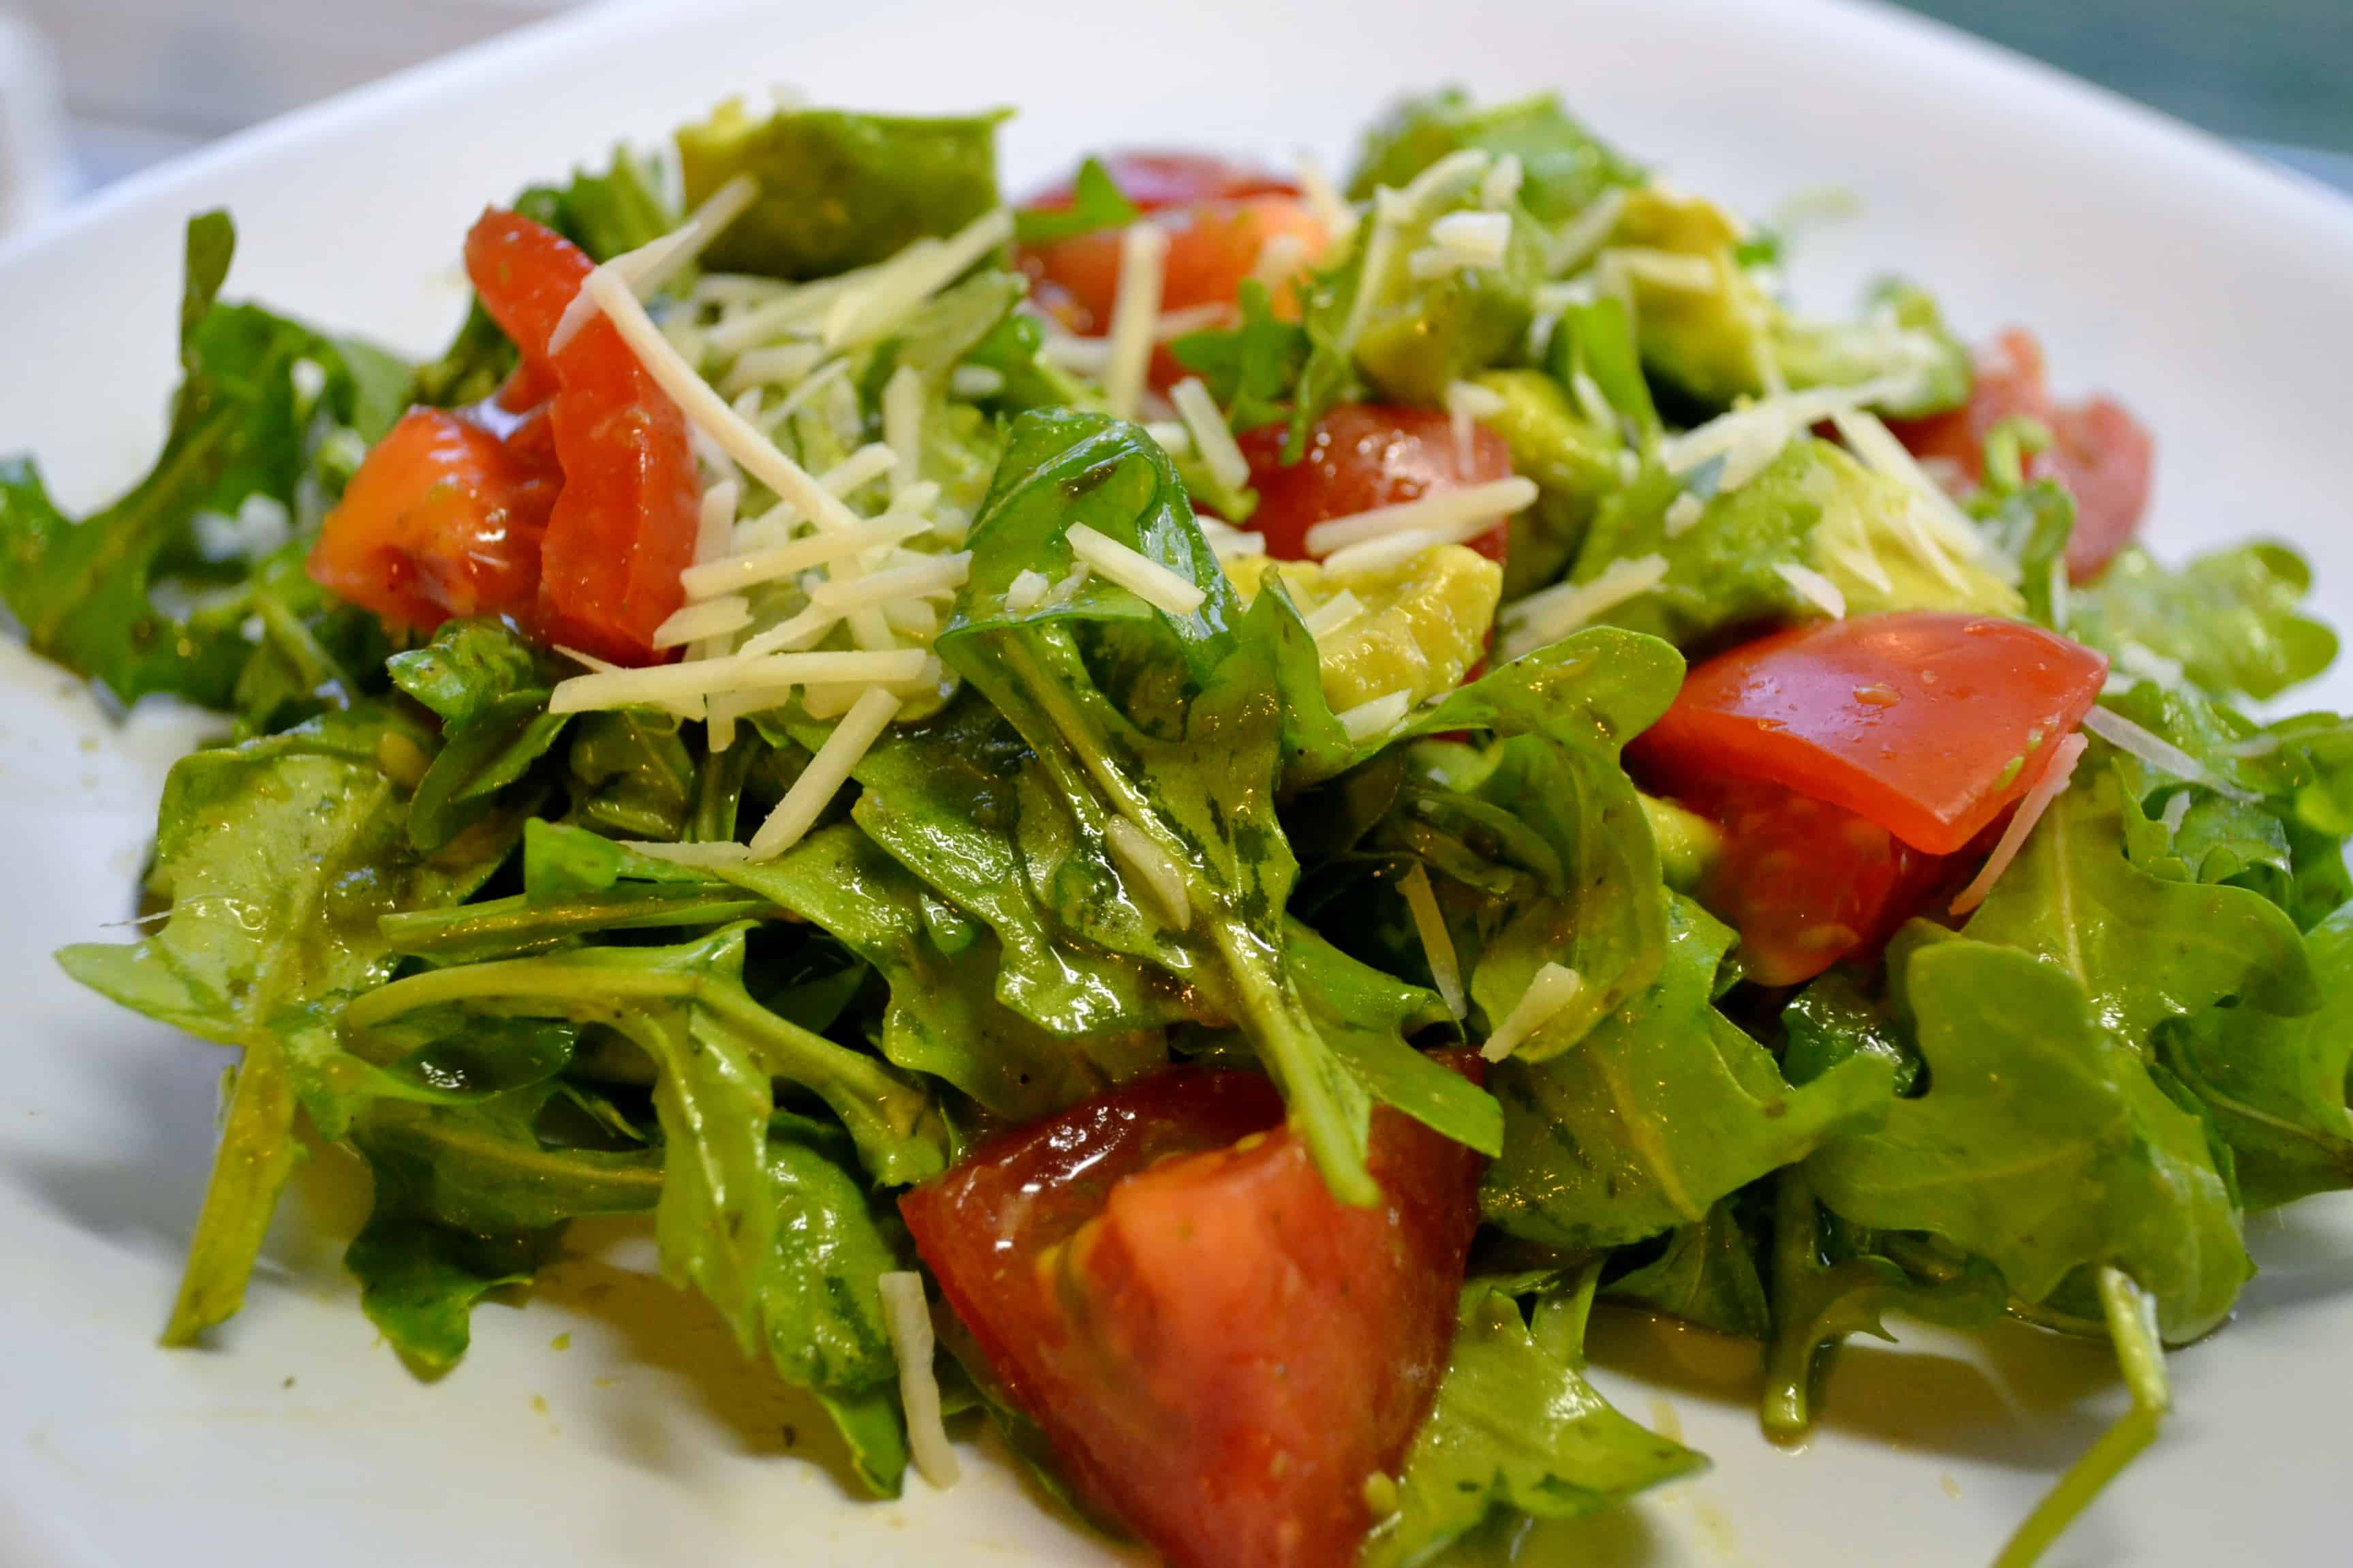 Tomato Avocado and Arugula Salad with Cilantro Vinaigrette